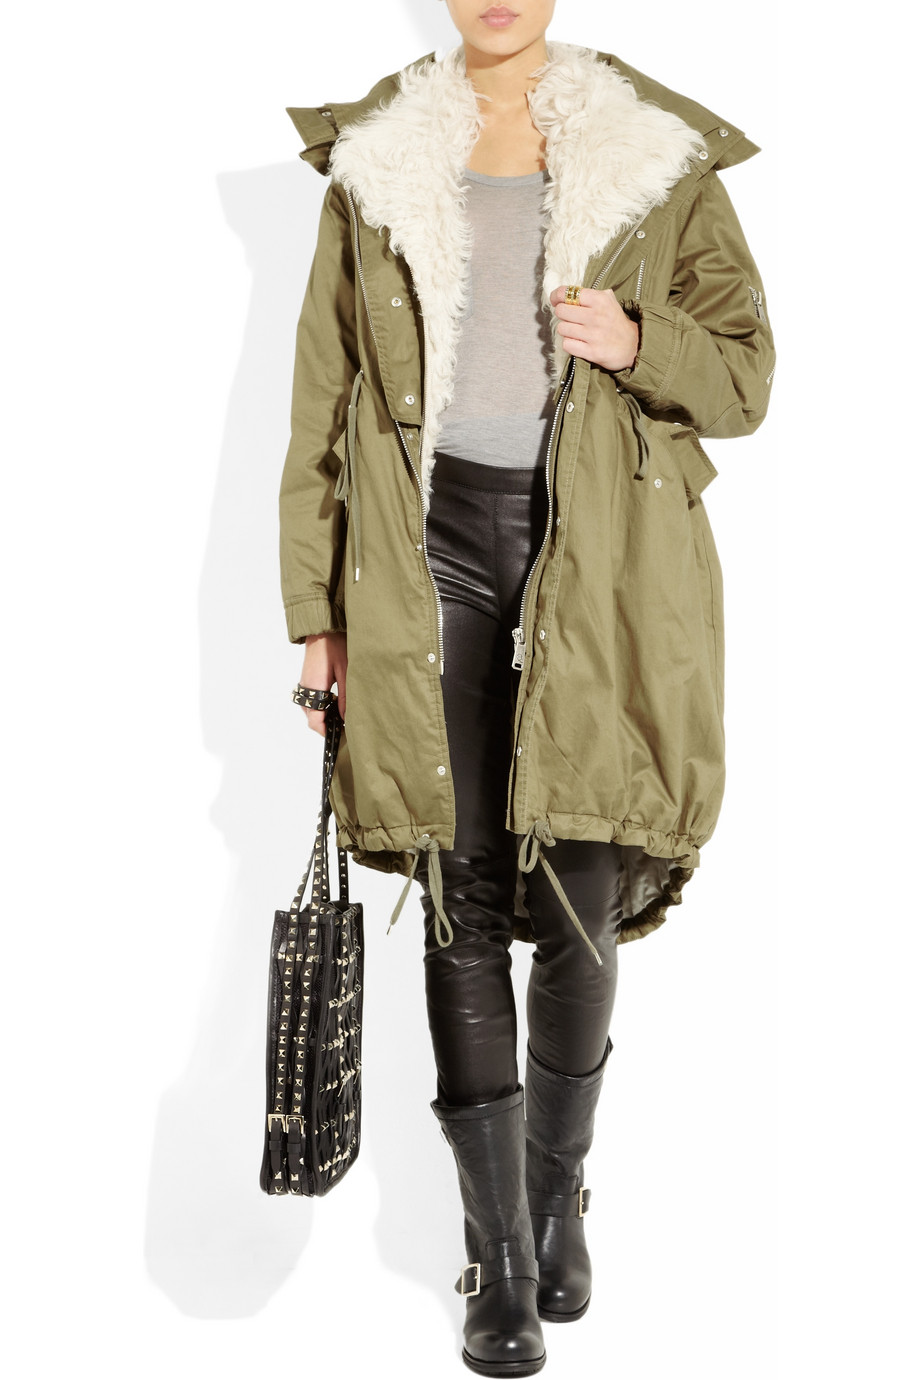 black-skinny-jeans-grayl-sweater-green-olive-jacket-coat-howtowear-fashion-style-outfit-fall-winter-parka-black-shoe-boots-black-bag-leather-weekend.jpg